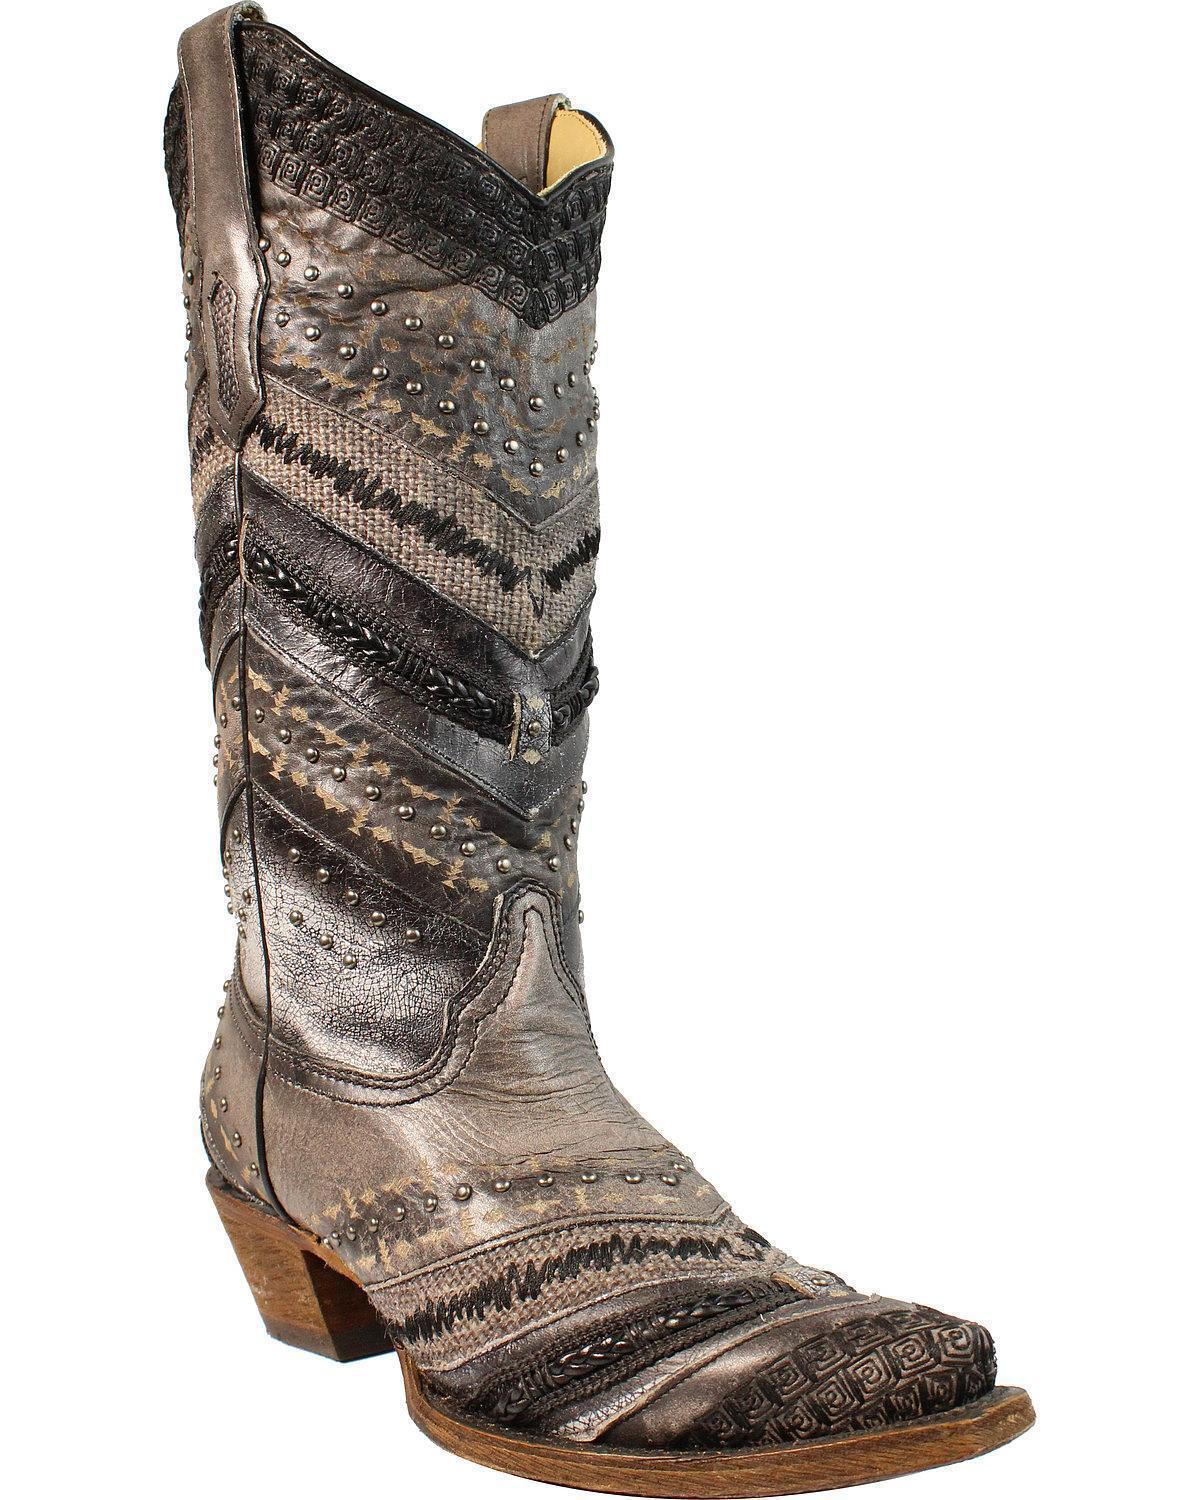 Corral Women's Embroidery And And And Stud Accent Boot Snip Toe - A3355 28ae52